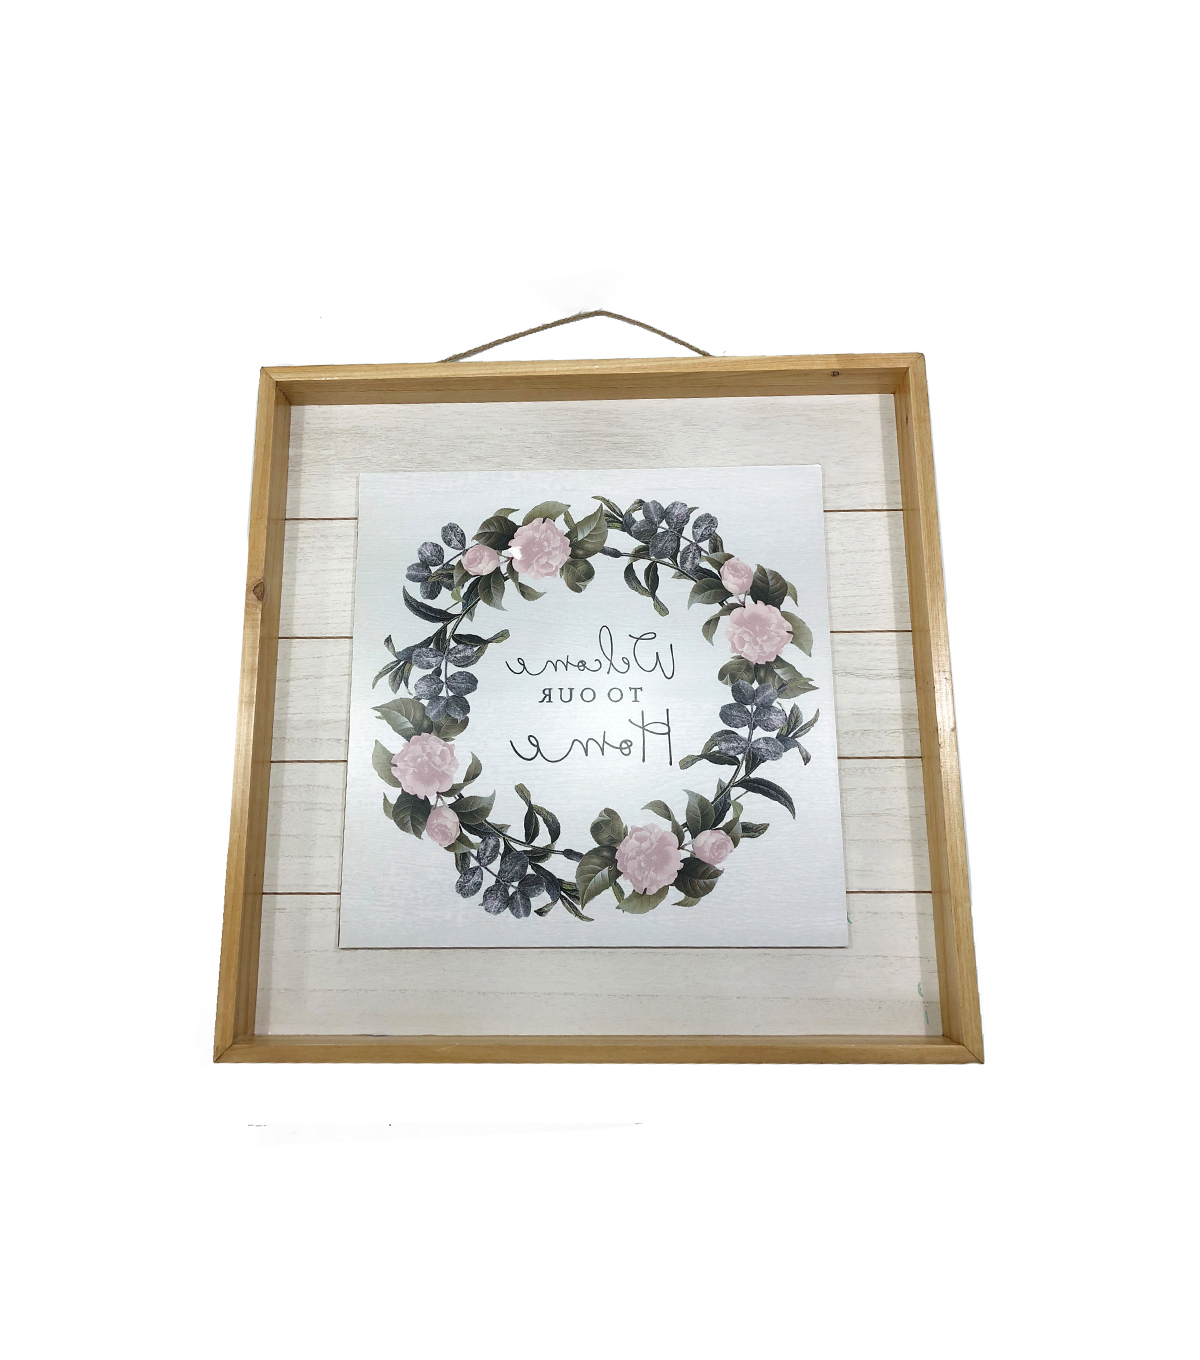 Most Recently Released Floral Wreath Wood Framed Wall Decor Throughout Simply Spring Wall Decor Welcome To Our Home & Wreath (View 11 of 20)